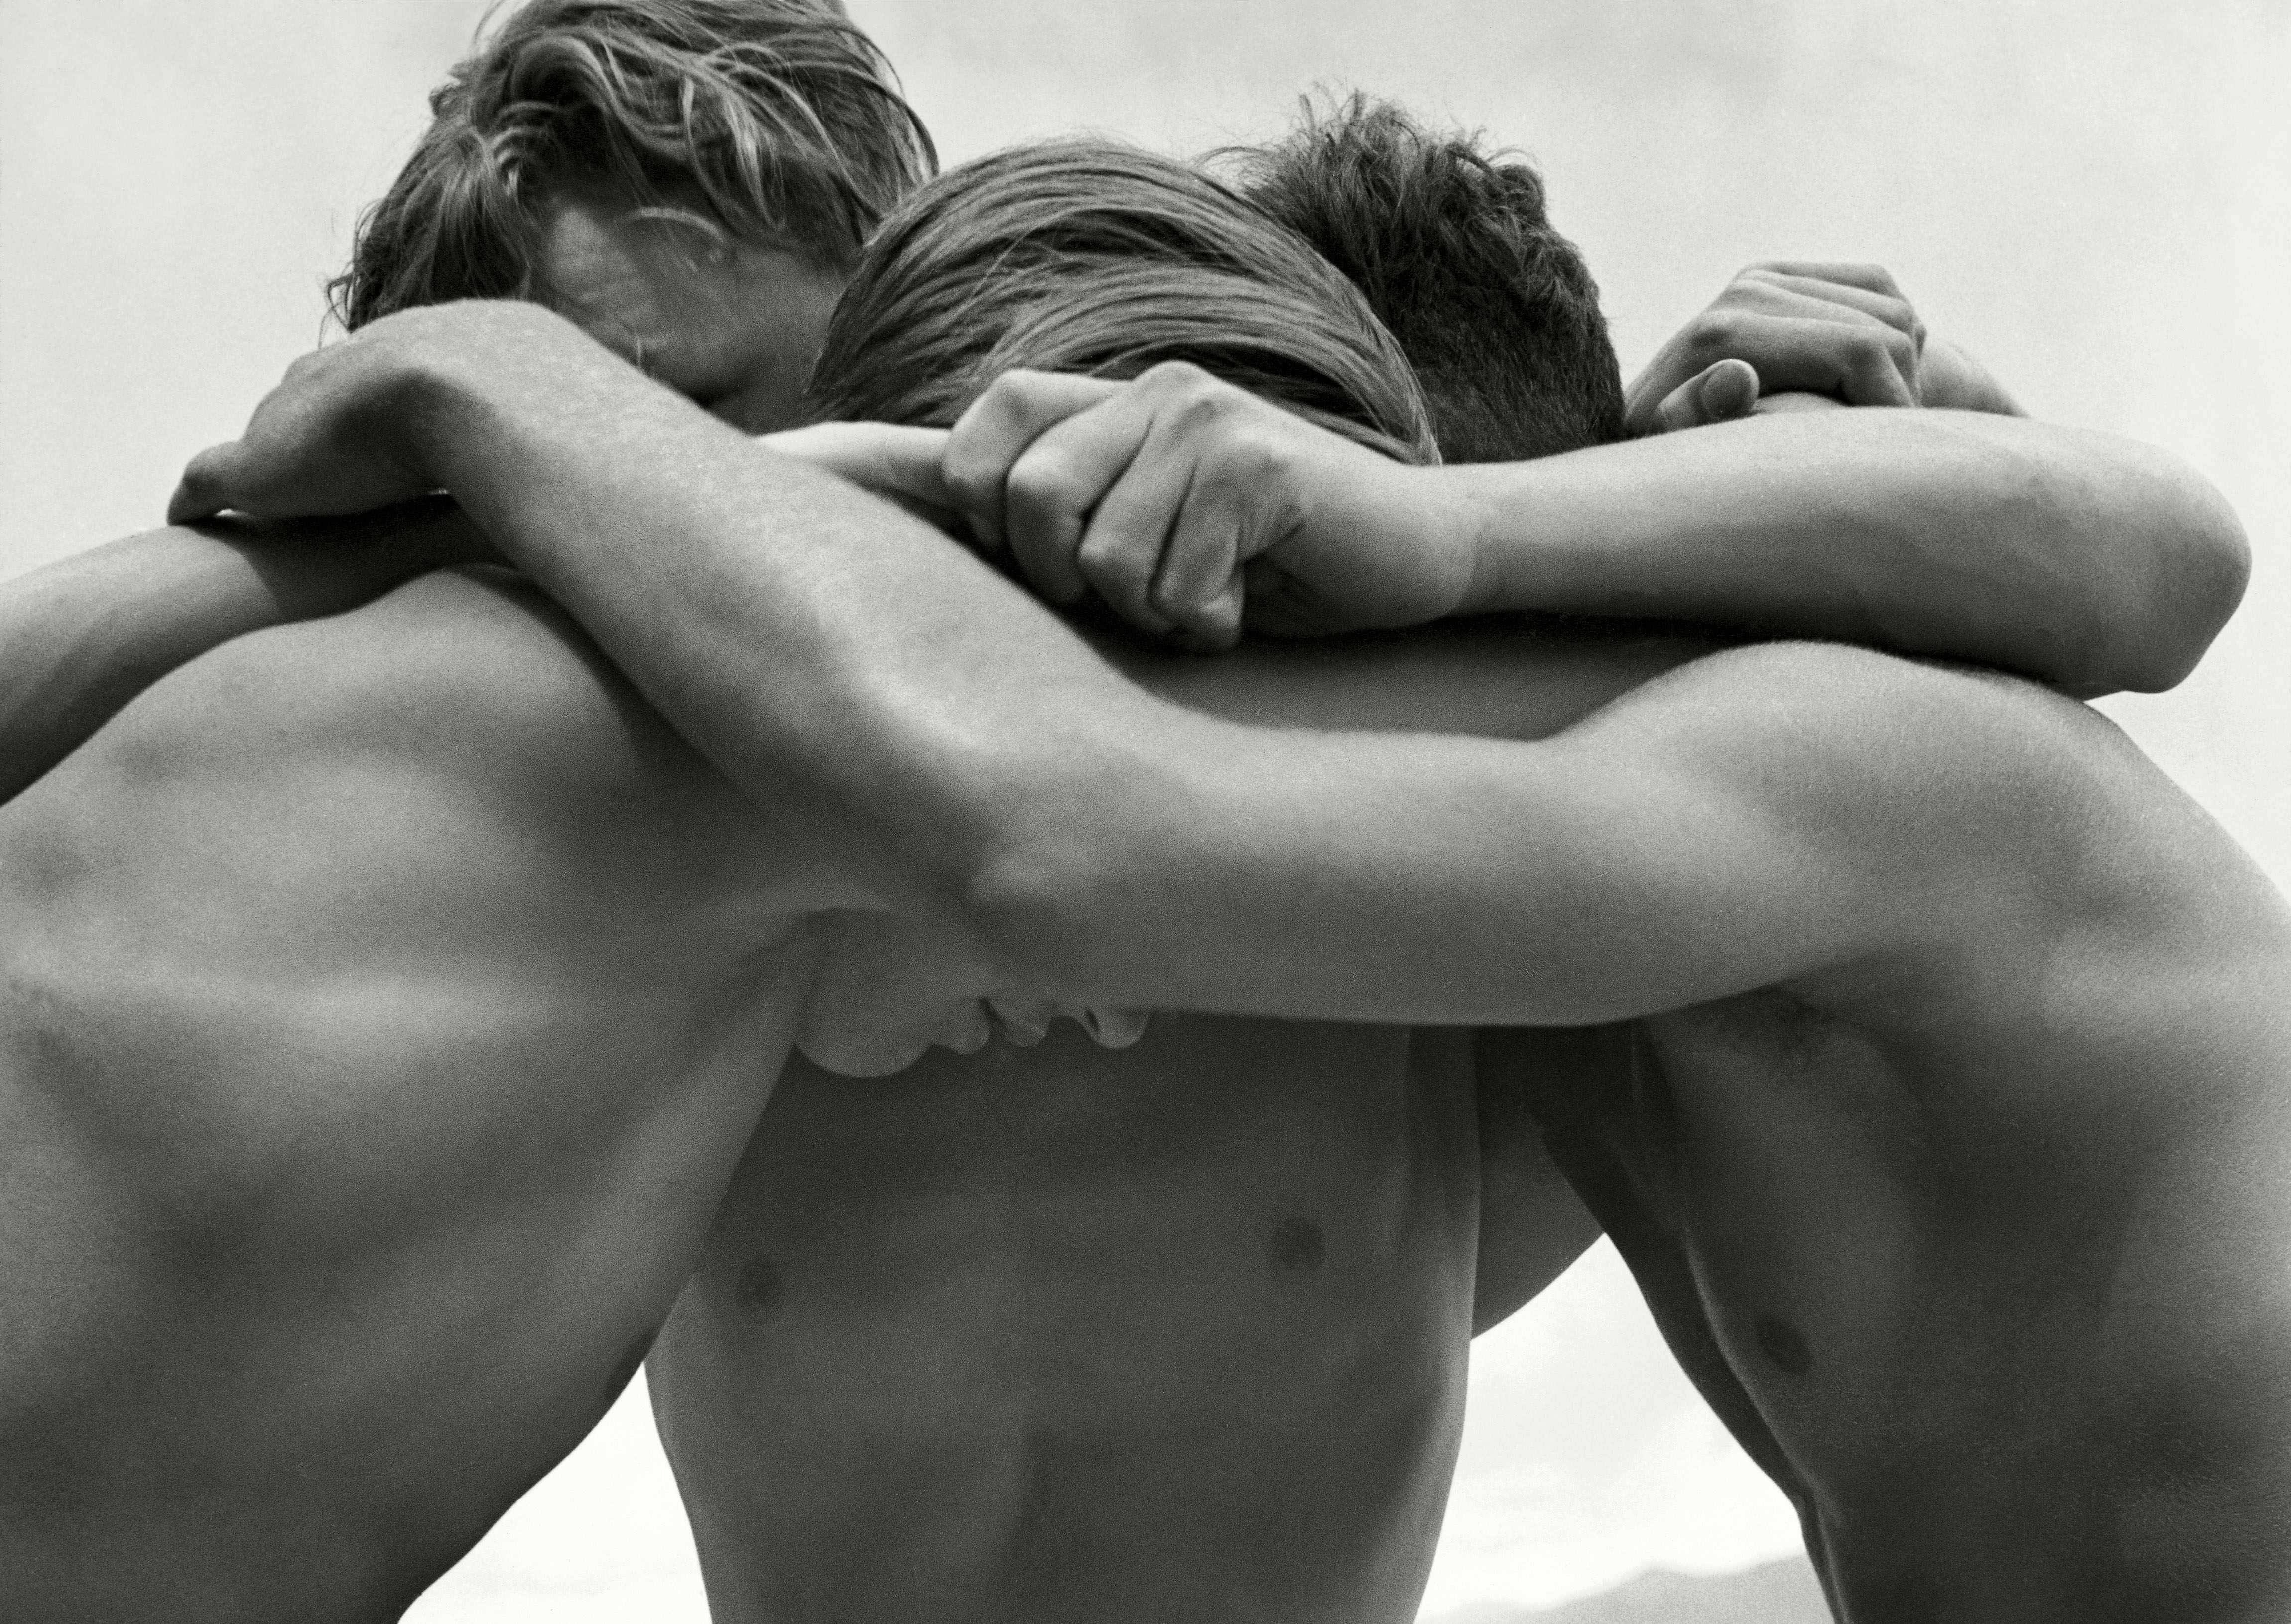 Wrestling boys at the baltic sea by Herbert List 1933